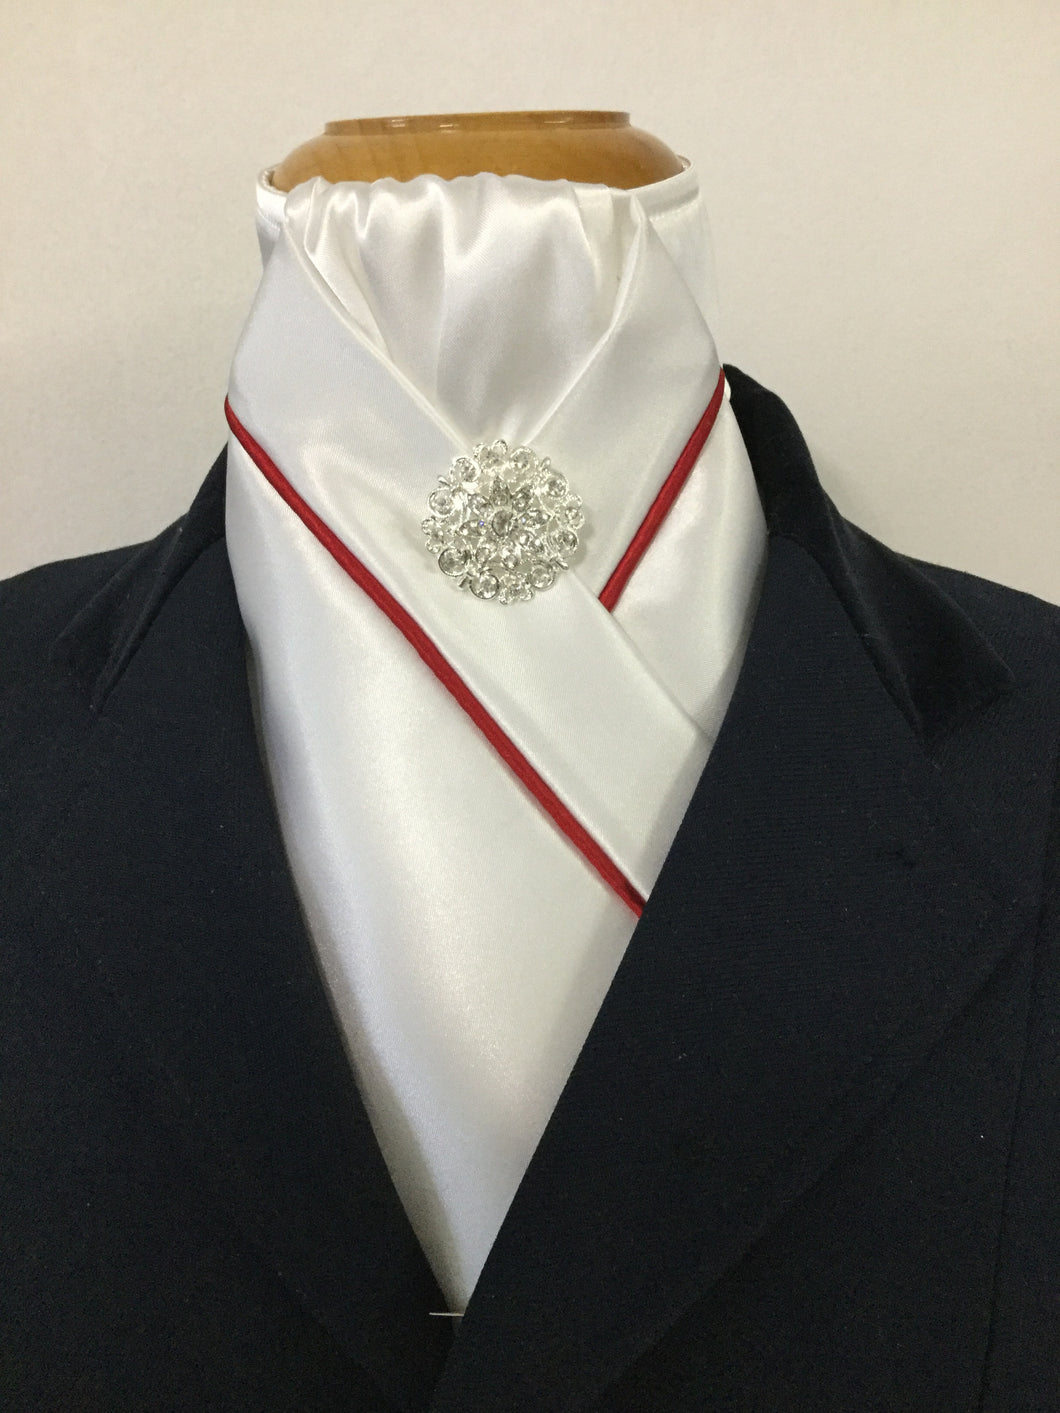 HHD White or Cream Custom Pre Tied Stock Tie with Red Piping